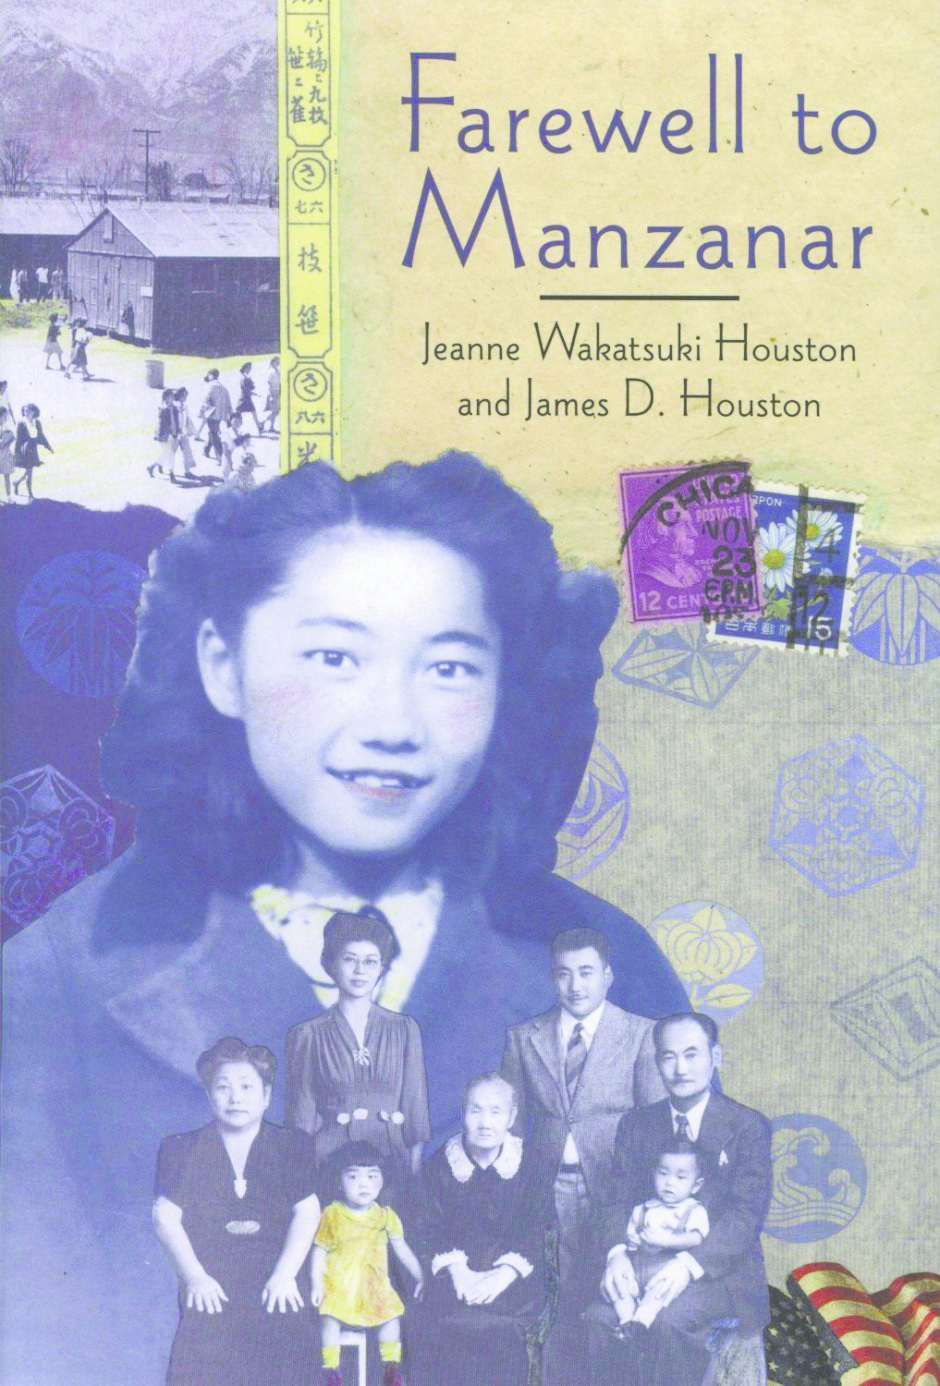 """The cover of Jeanne Wakatsuki Houston's 1973 book, """"Farewell to Manzanar,"""" written with her husband, James Houston. The Wakatsuki family is pictured on the book's cover along with the author."""